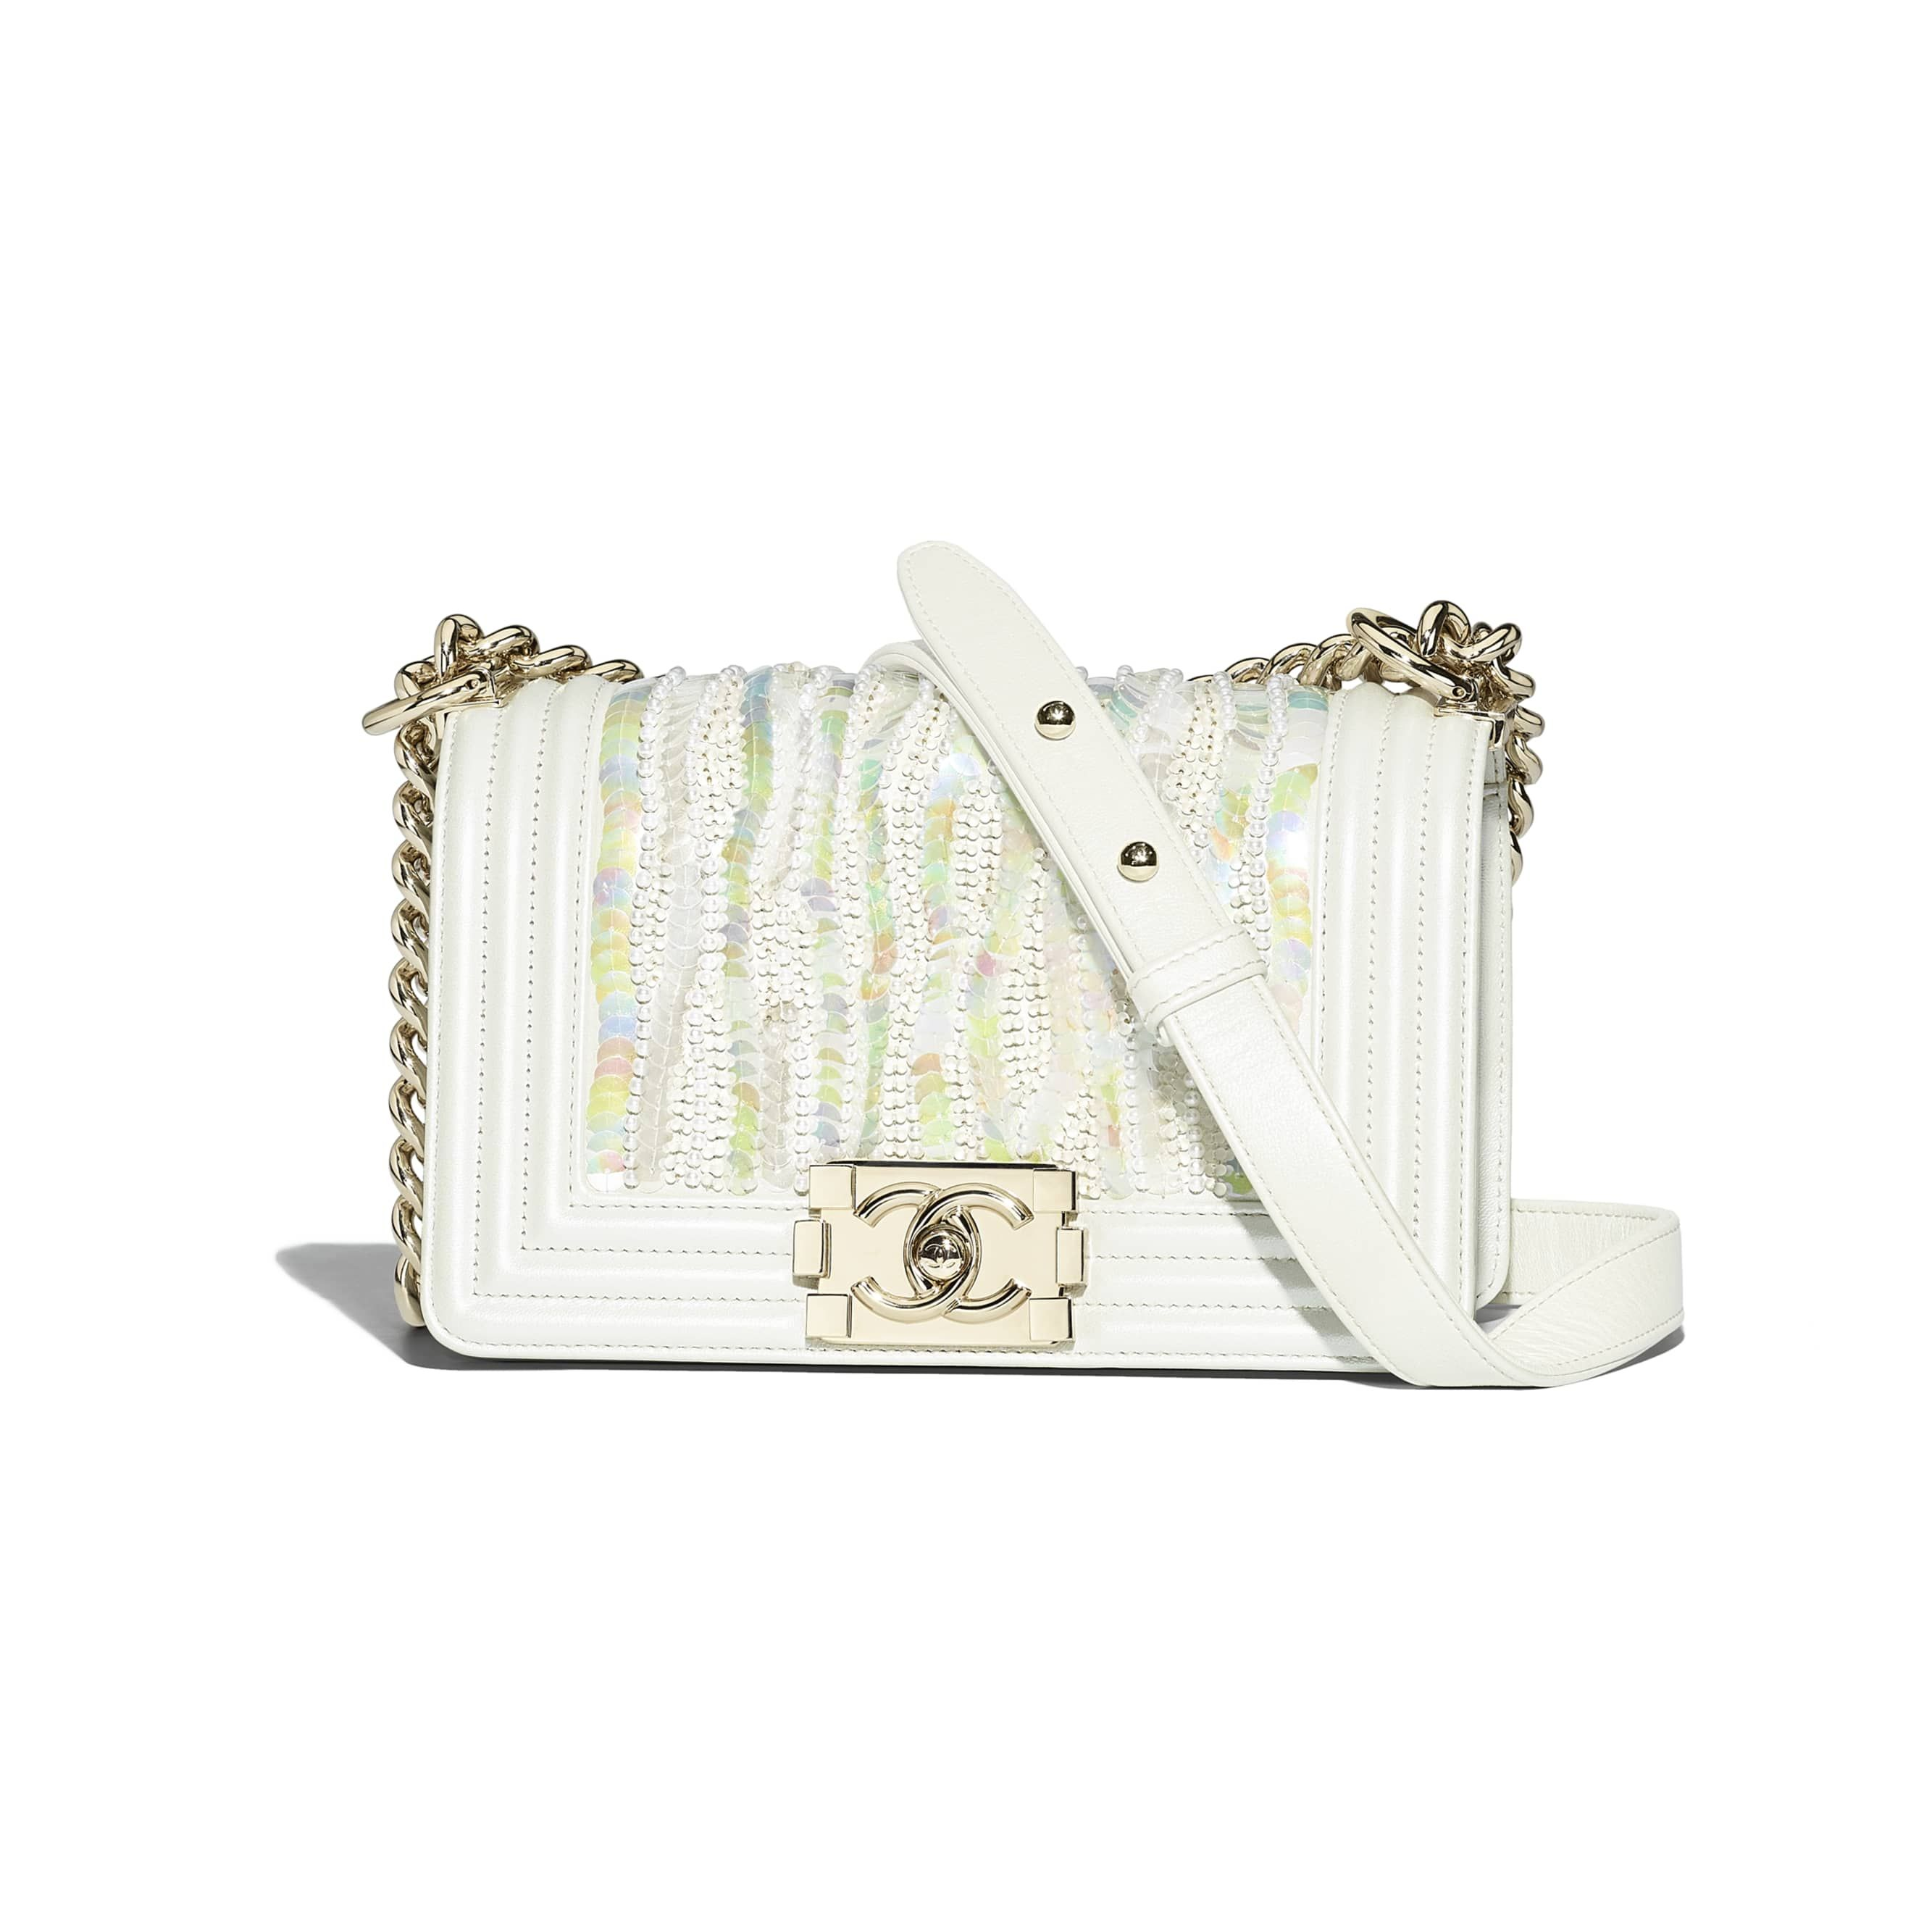 Metallic Embroidered Lambskin, Sequins, Imitation Pearls   Gold-Tone Metal  White Small BOY CHANEL Handbag   CHANEL b35532c9ad